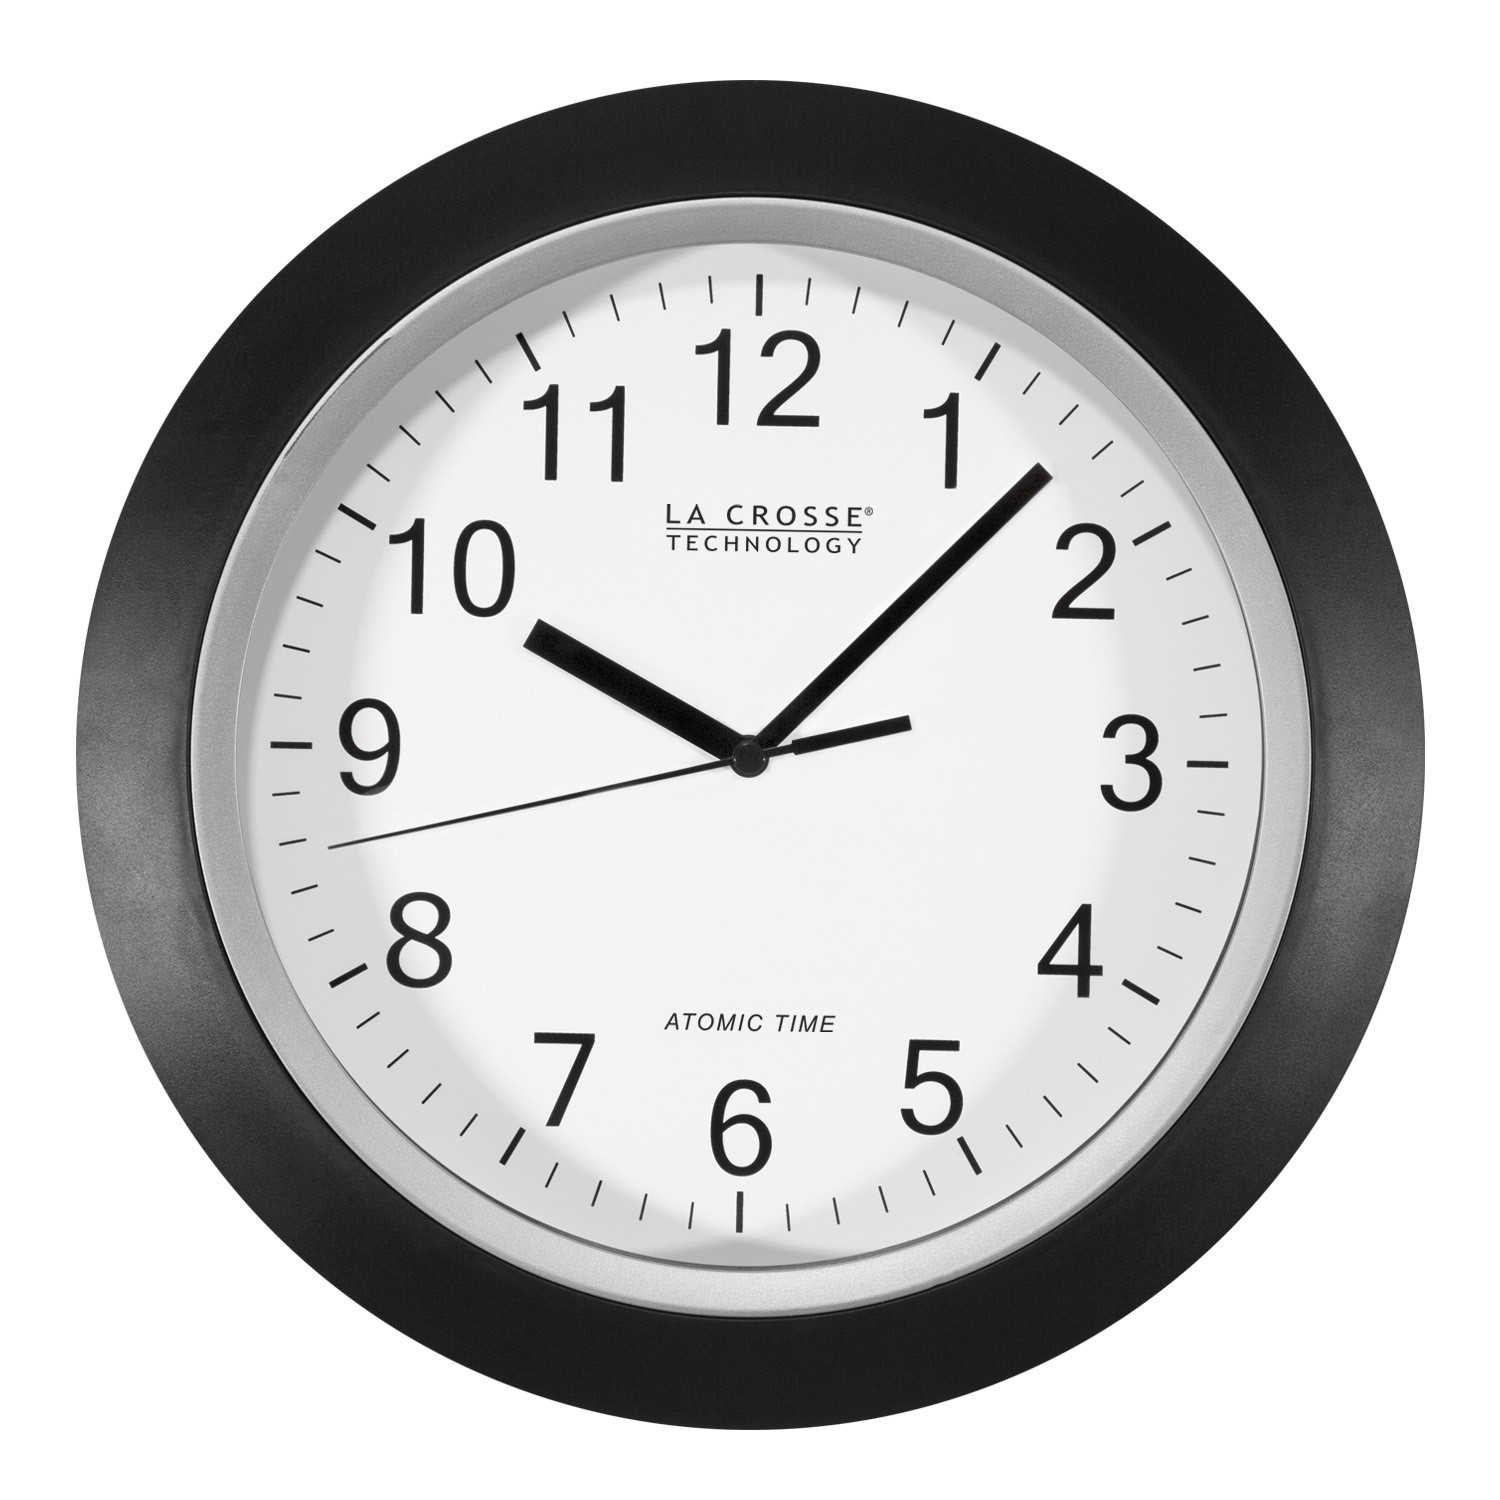 Better Homes and Gardens 12 Inch Analog Atomic Wall Clock